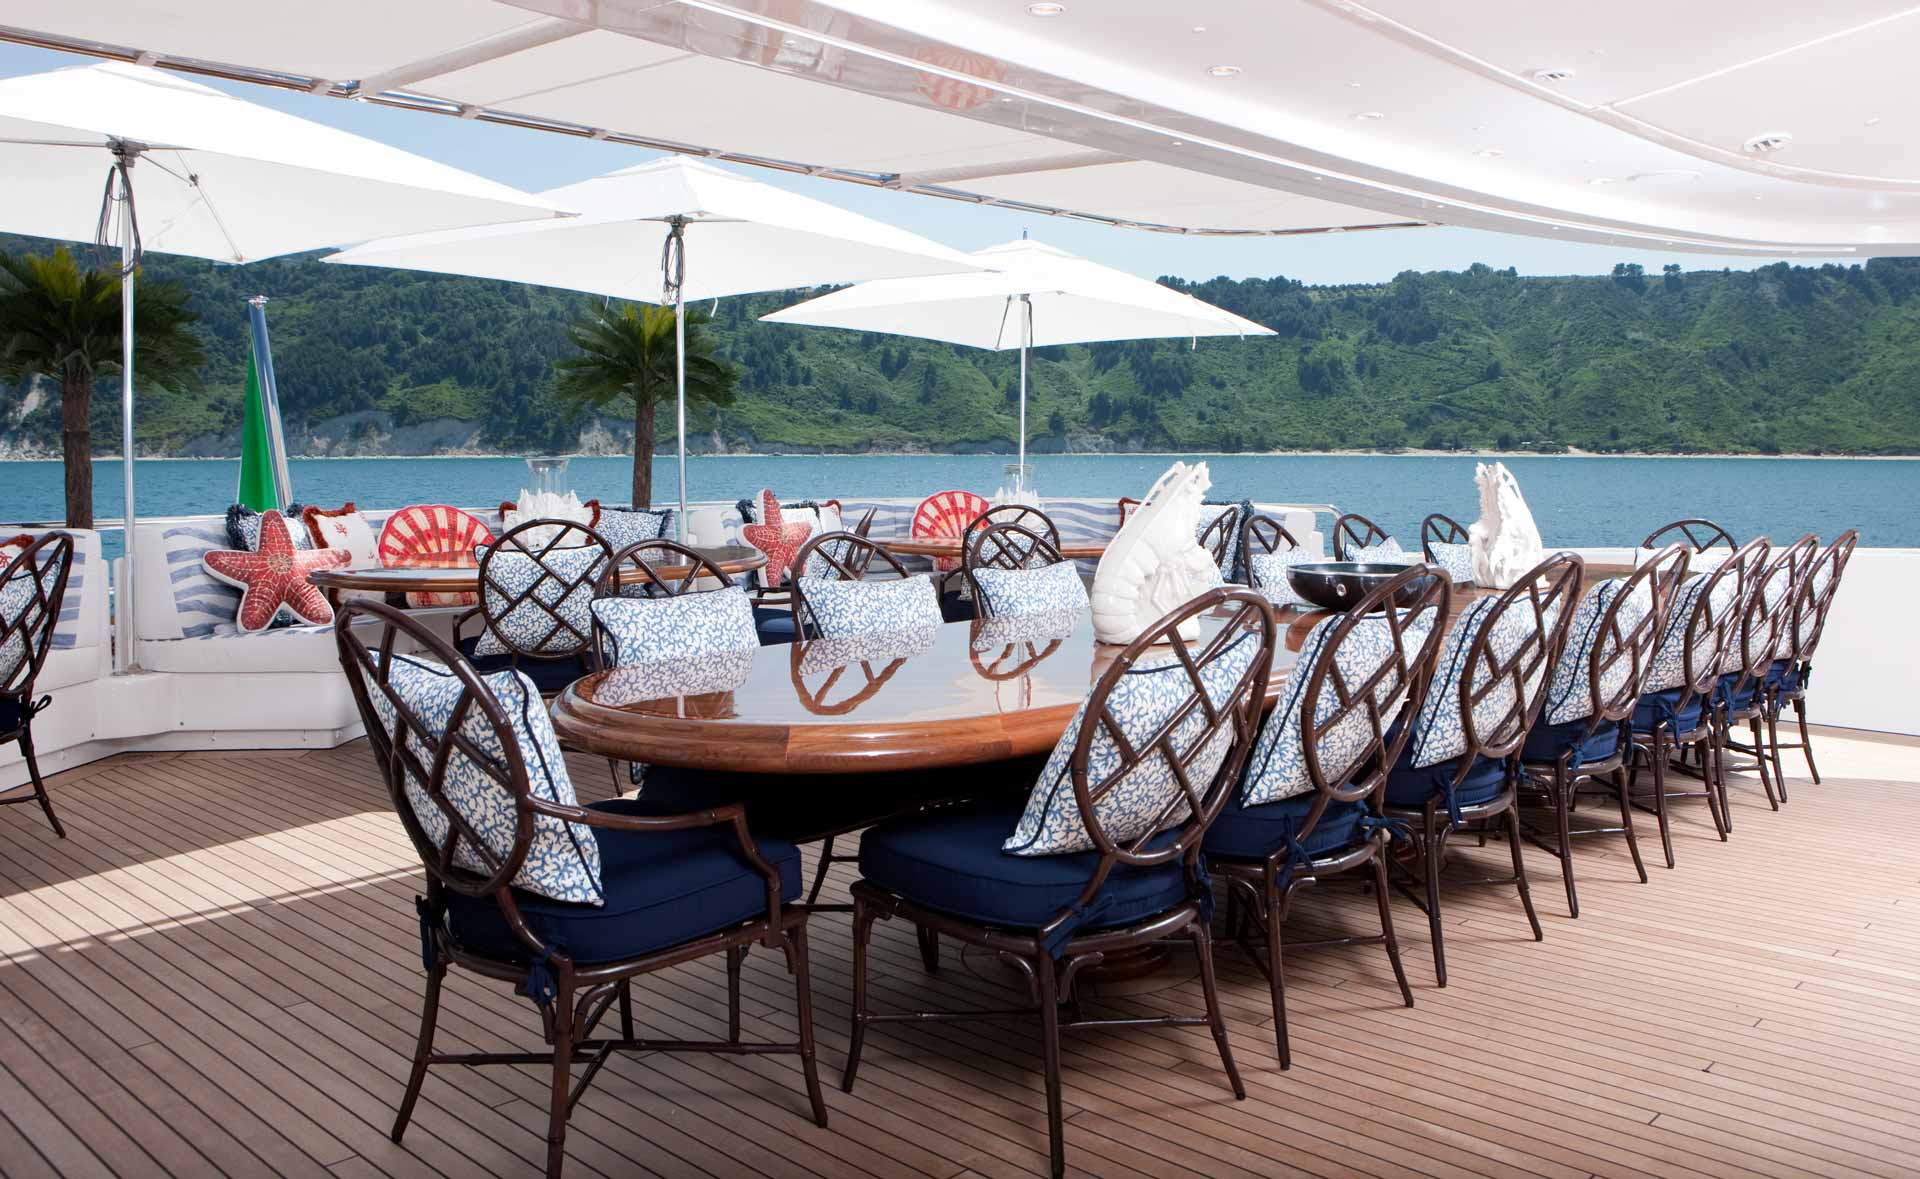 Beautiful dining table on deck covered by large square umbrellas with an island in the background.